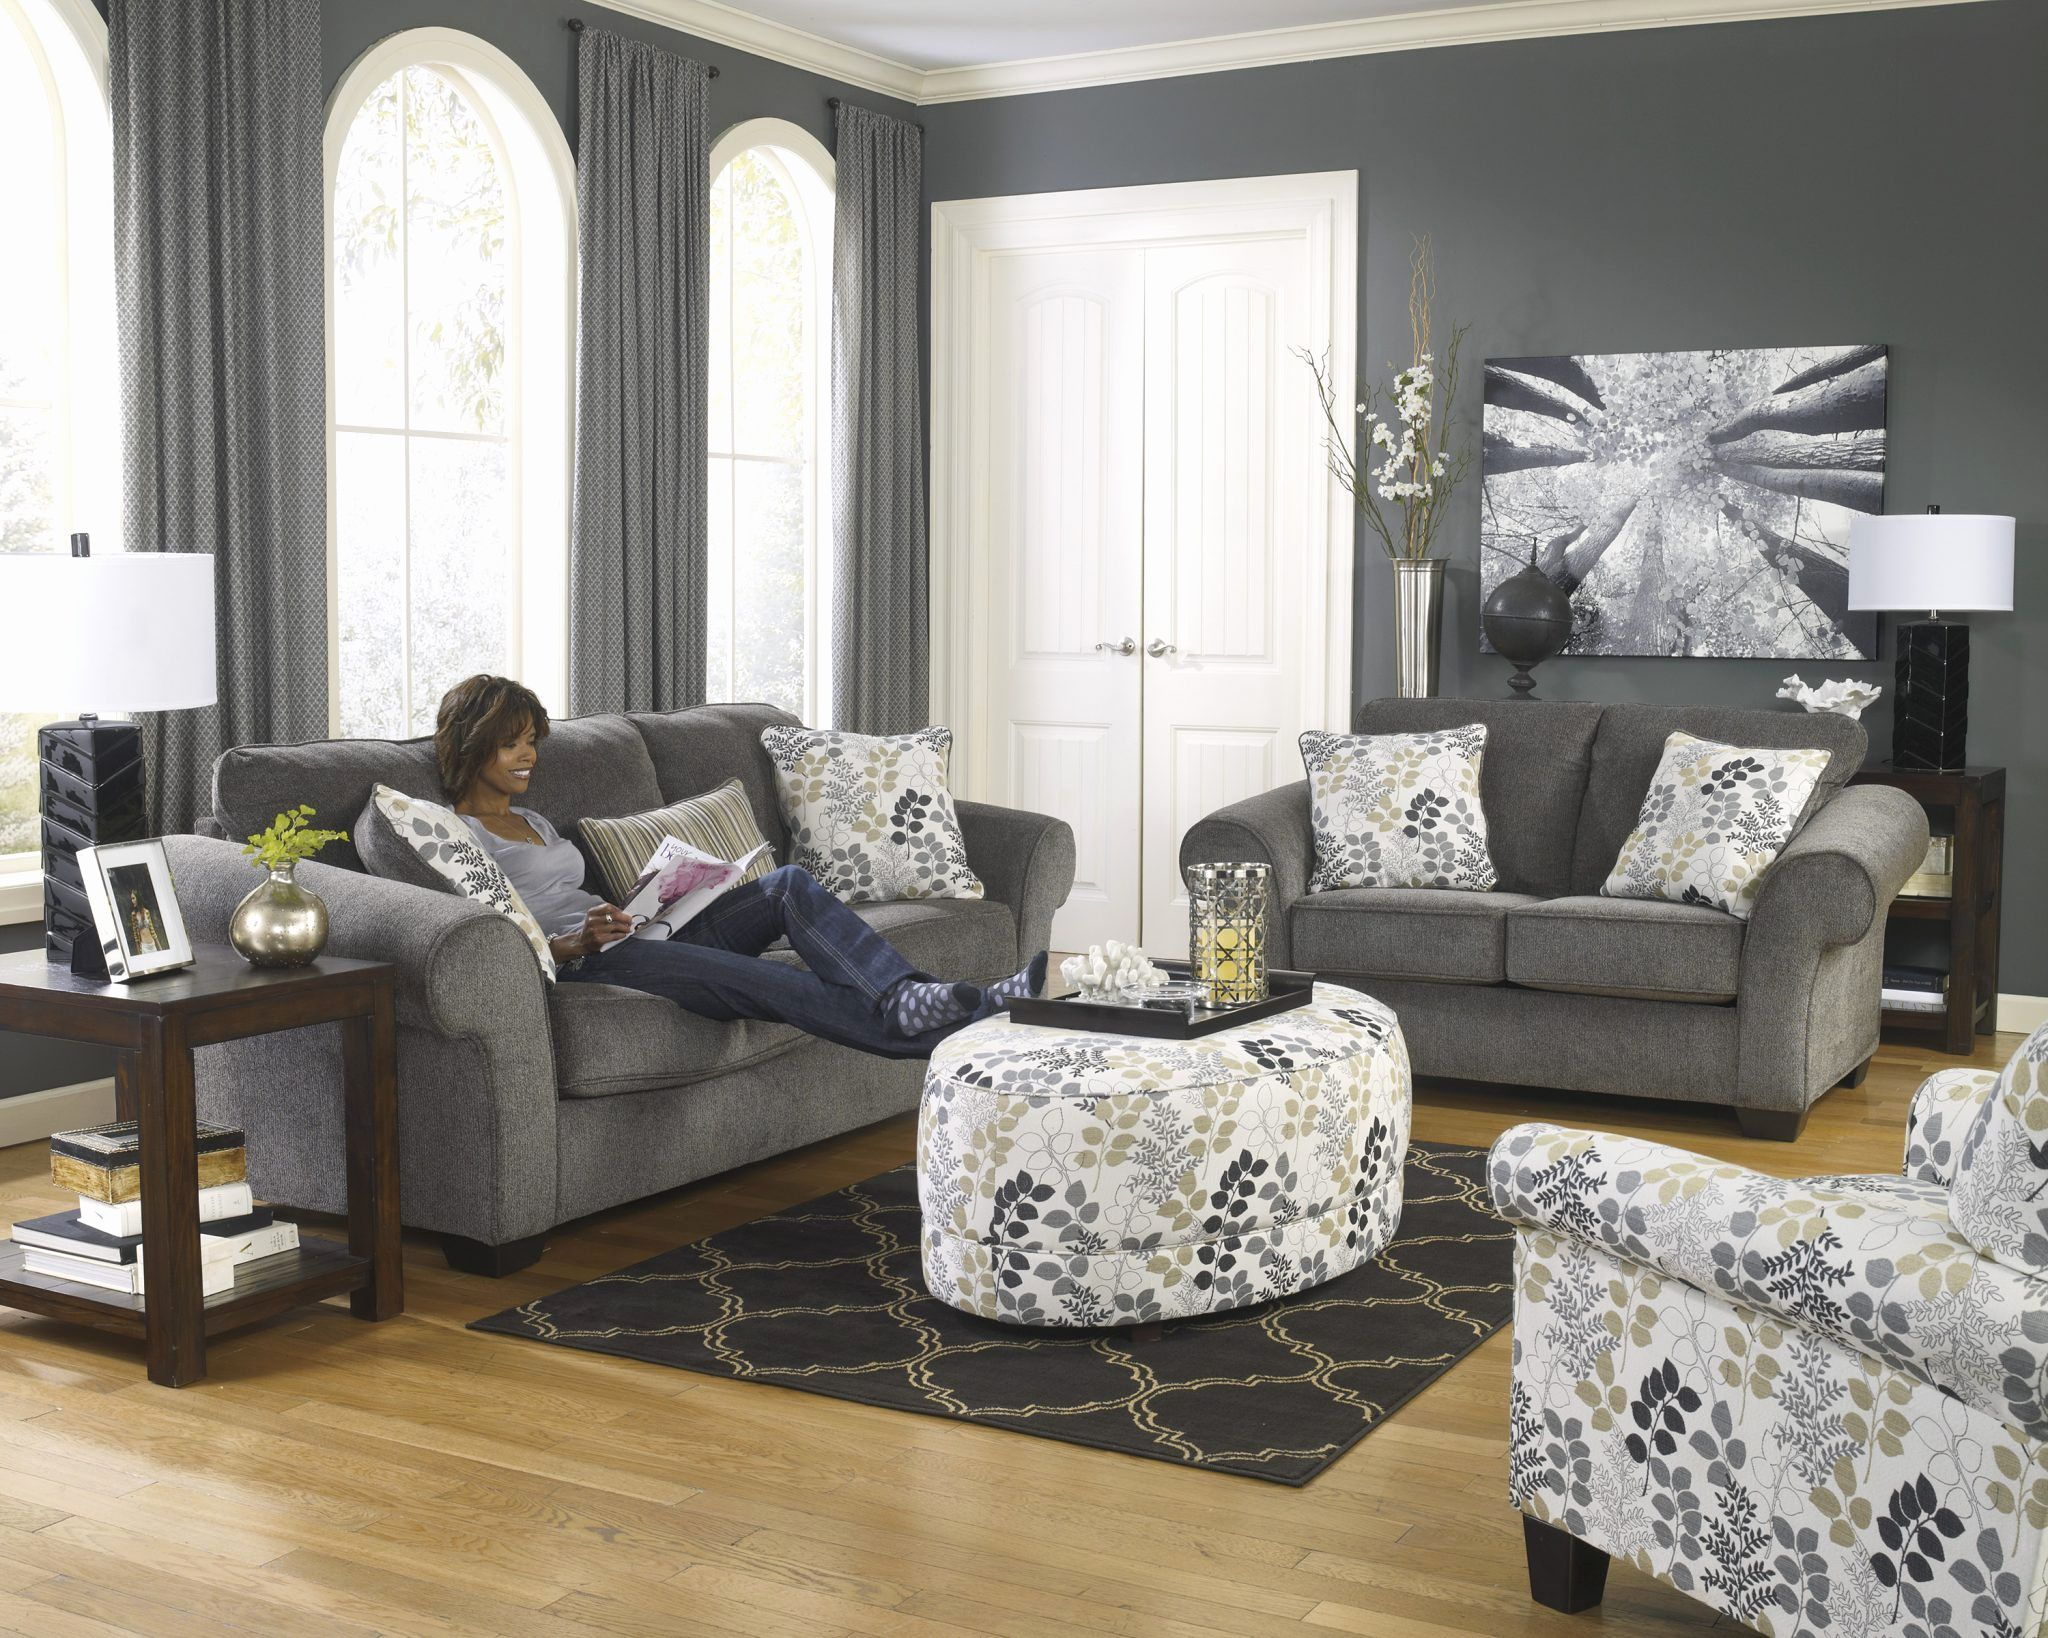 Amazing Grey Sofa And Loveseat Set Photograpy Sofas Magnificent